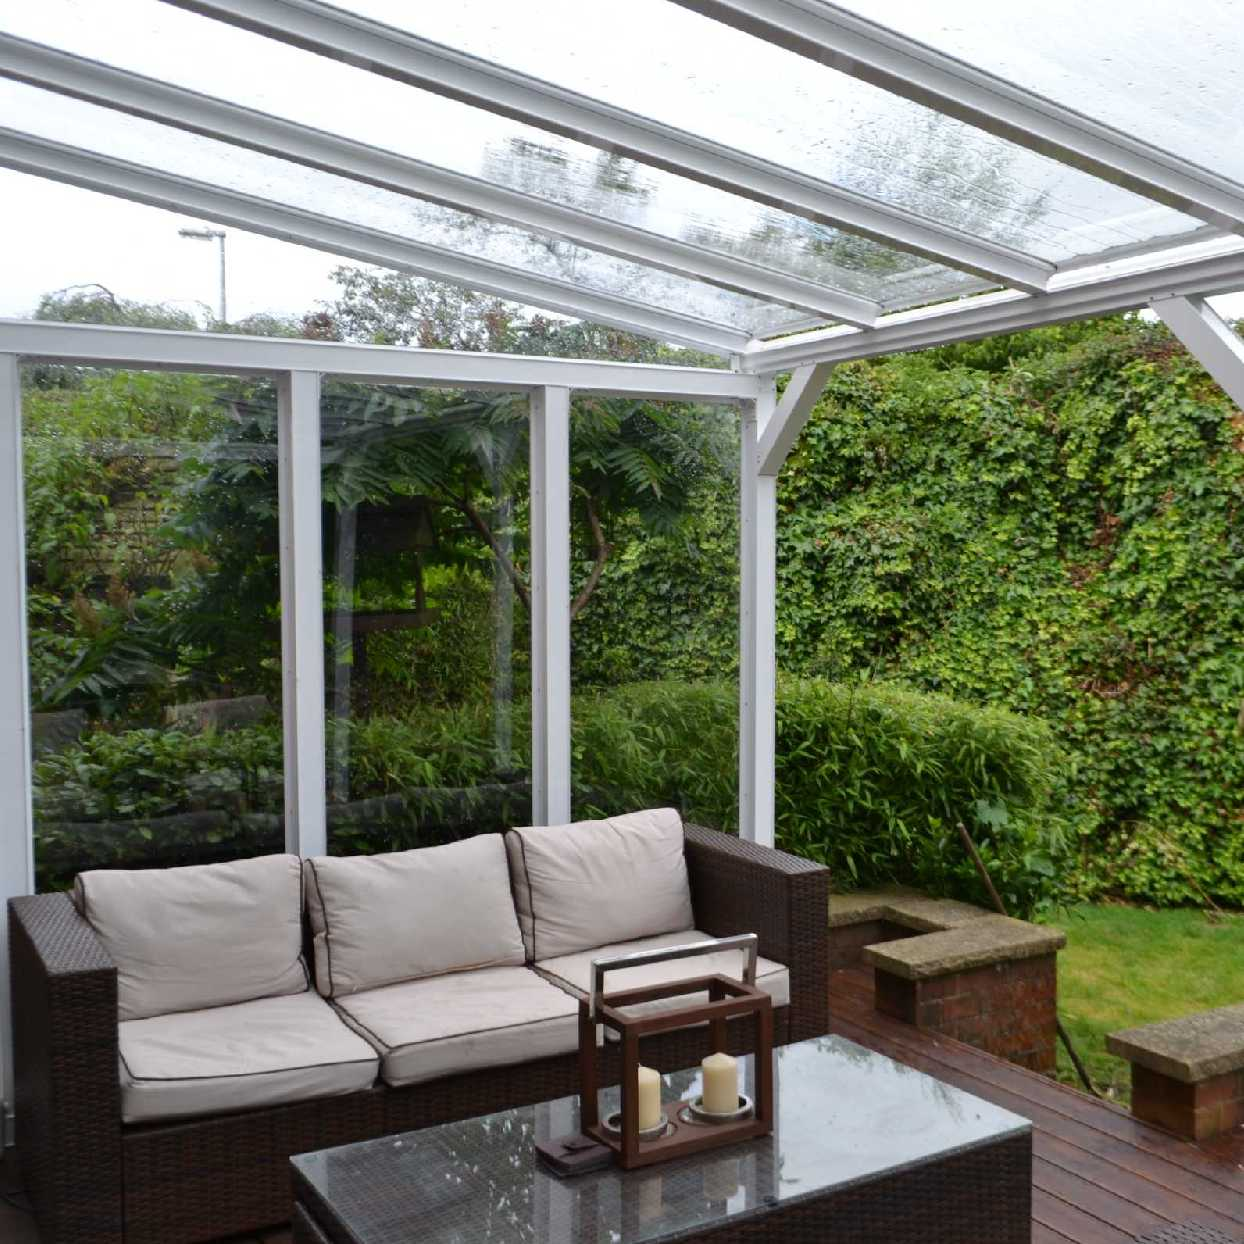 Great selection of Omega Smart White Lean-To Canopy with 16mm Polycarbonate Glazing - 3.1m (W) x 3.0m (P), (2) Supporting Posts